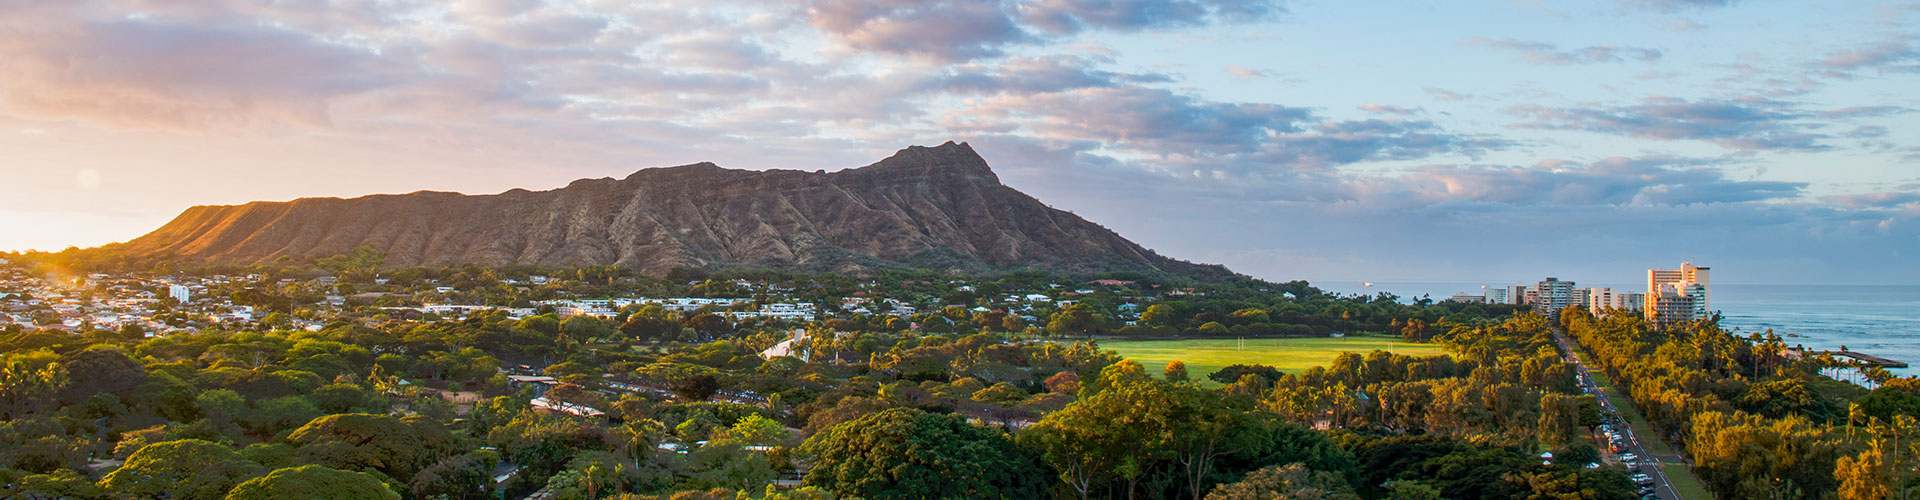 Diamond Head with houses at the bottom